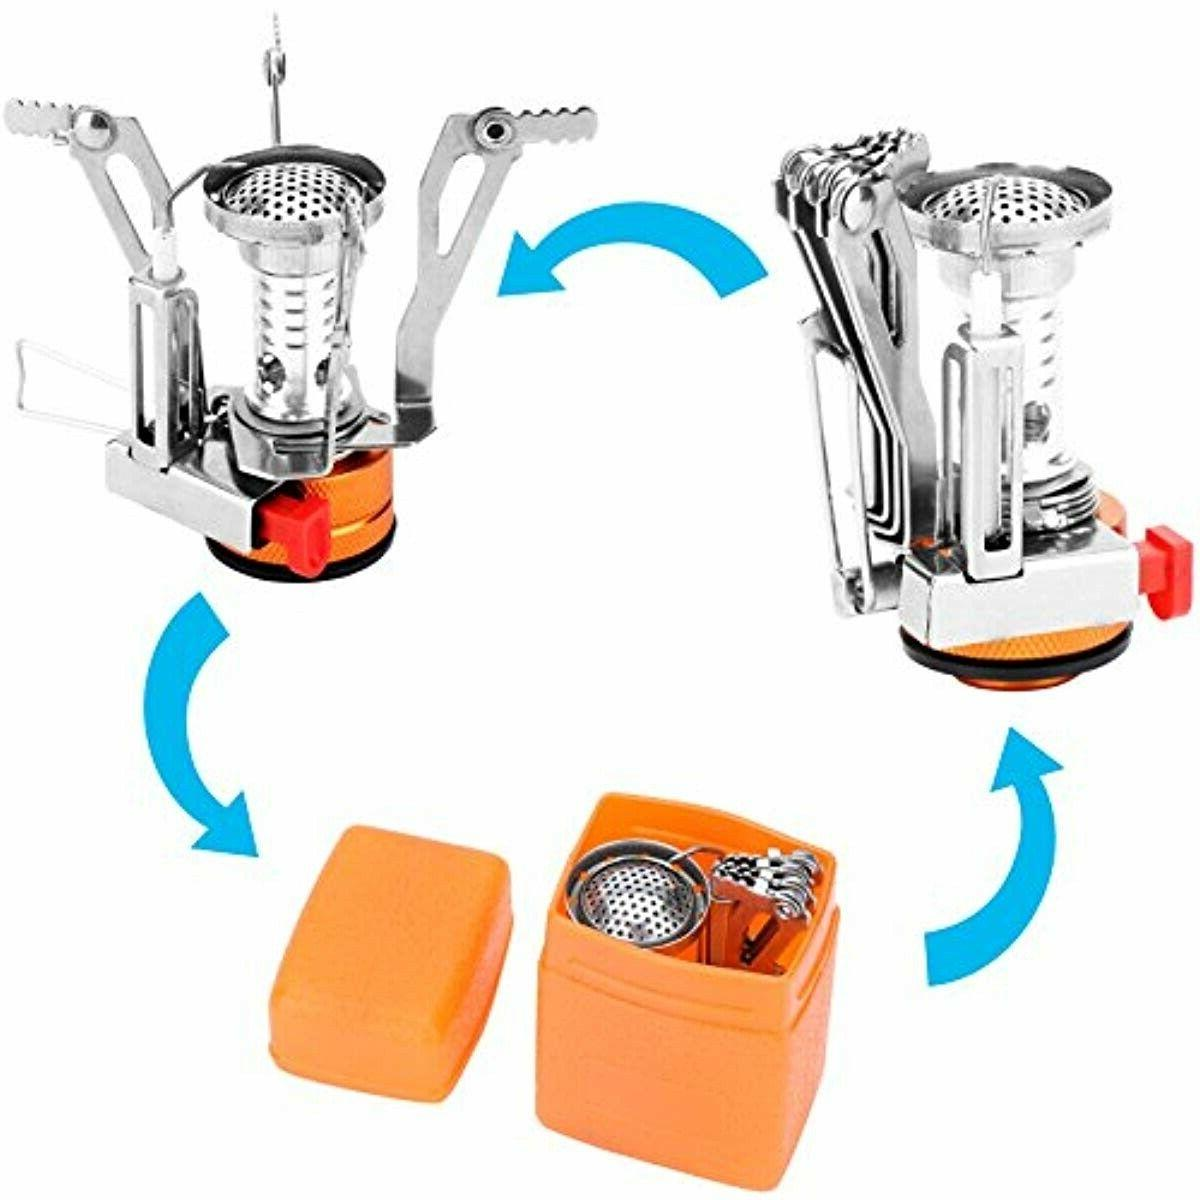 REEHUT Ultralight Portable Stoves Backpacking with Piezo